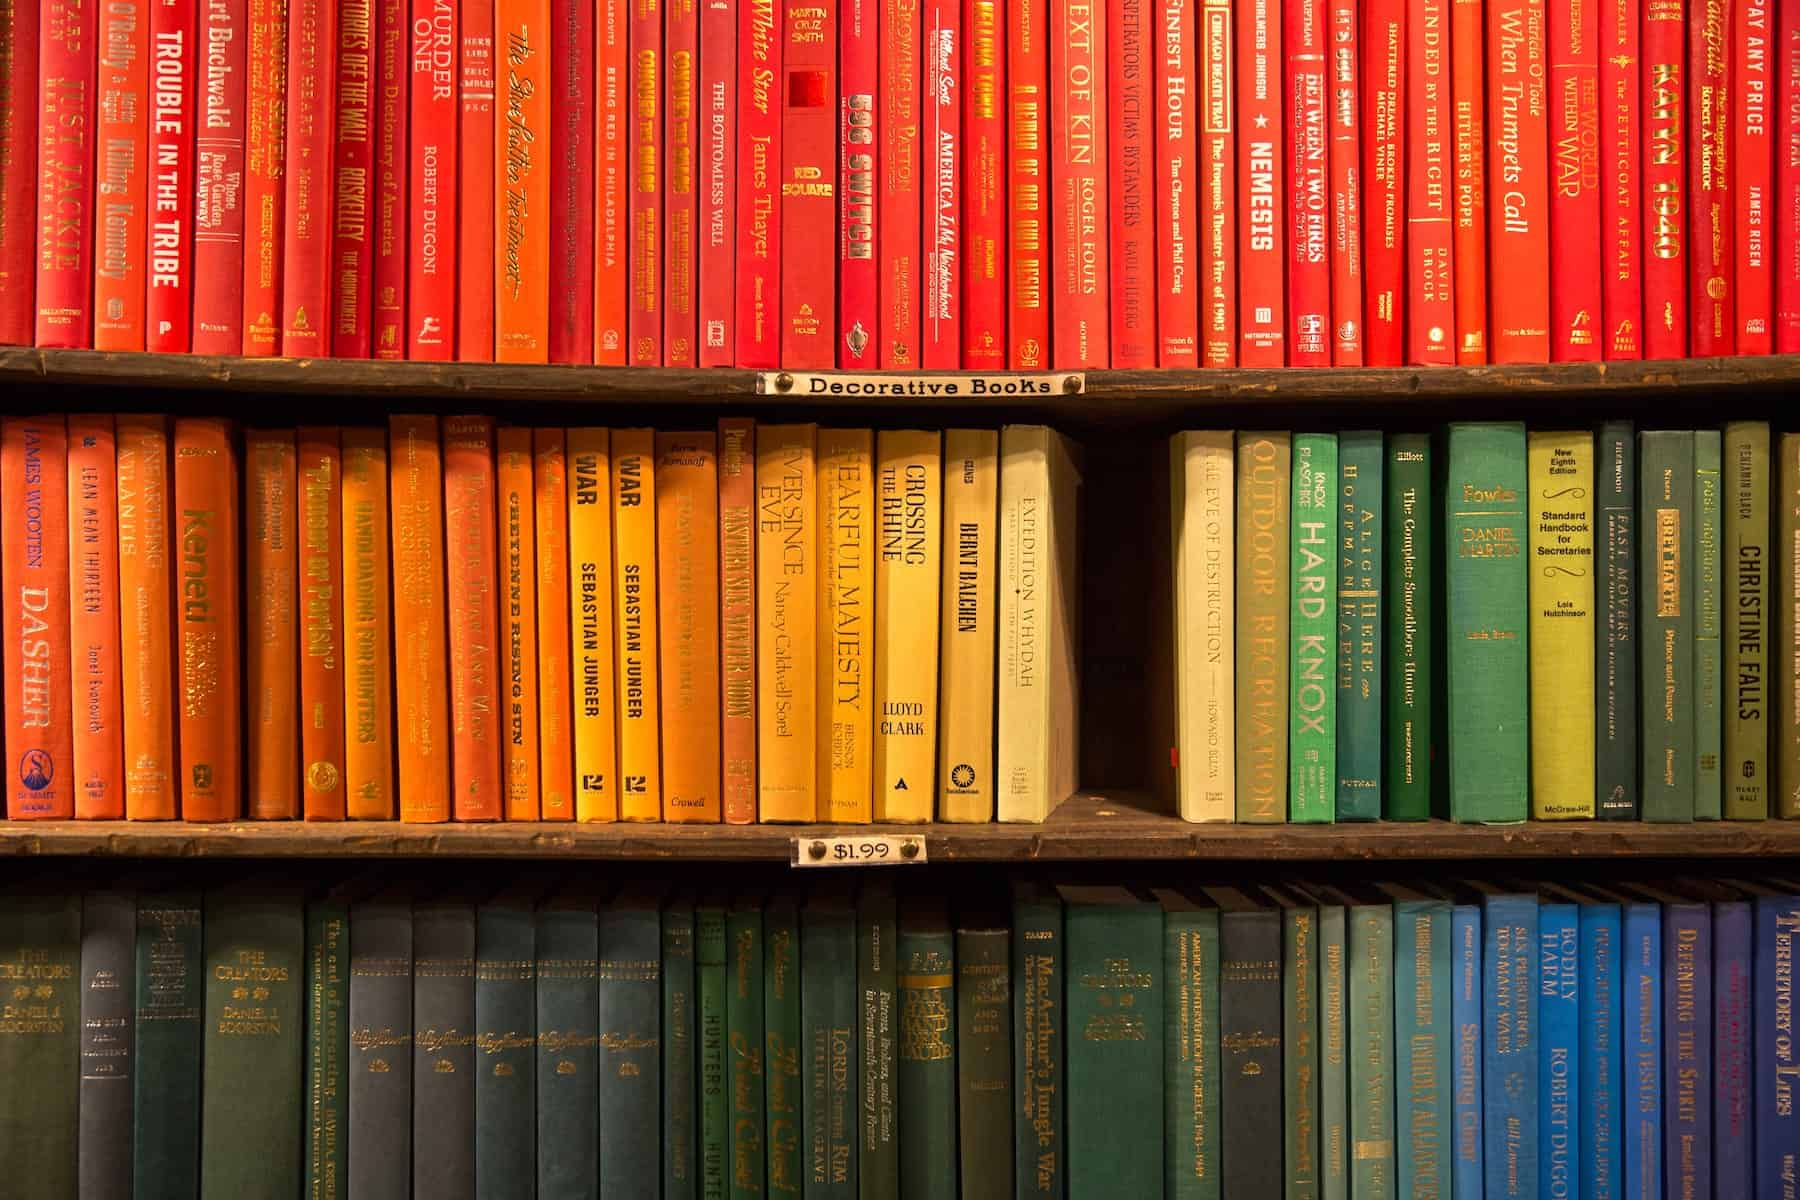 Three shelves of a library, showing books arranged by color of the spine. The top shelf is red books, the middle shelf is orange to green, the bottom shelf is dark green.